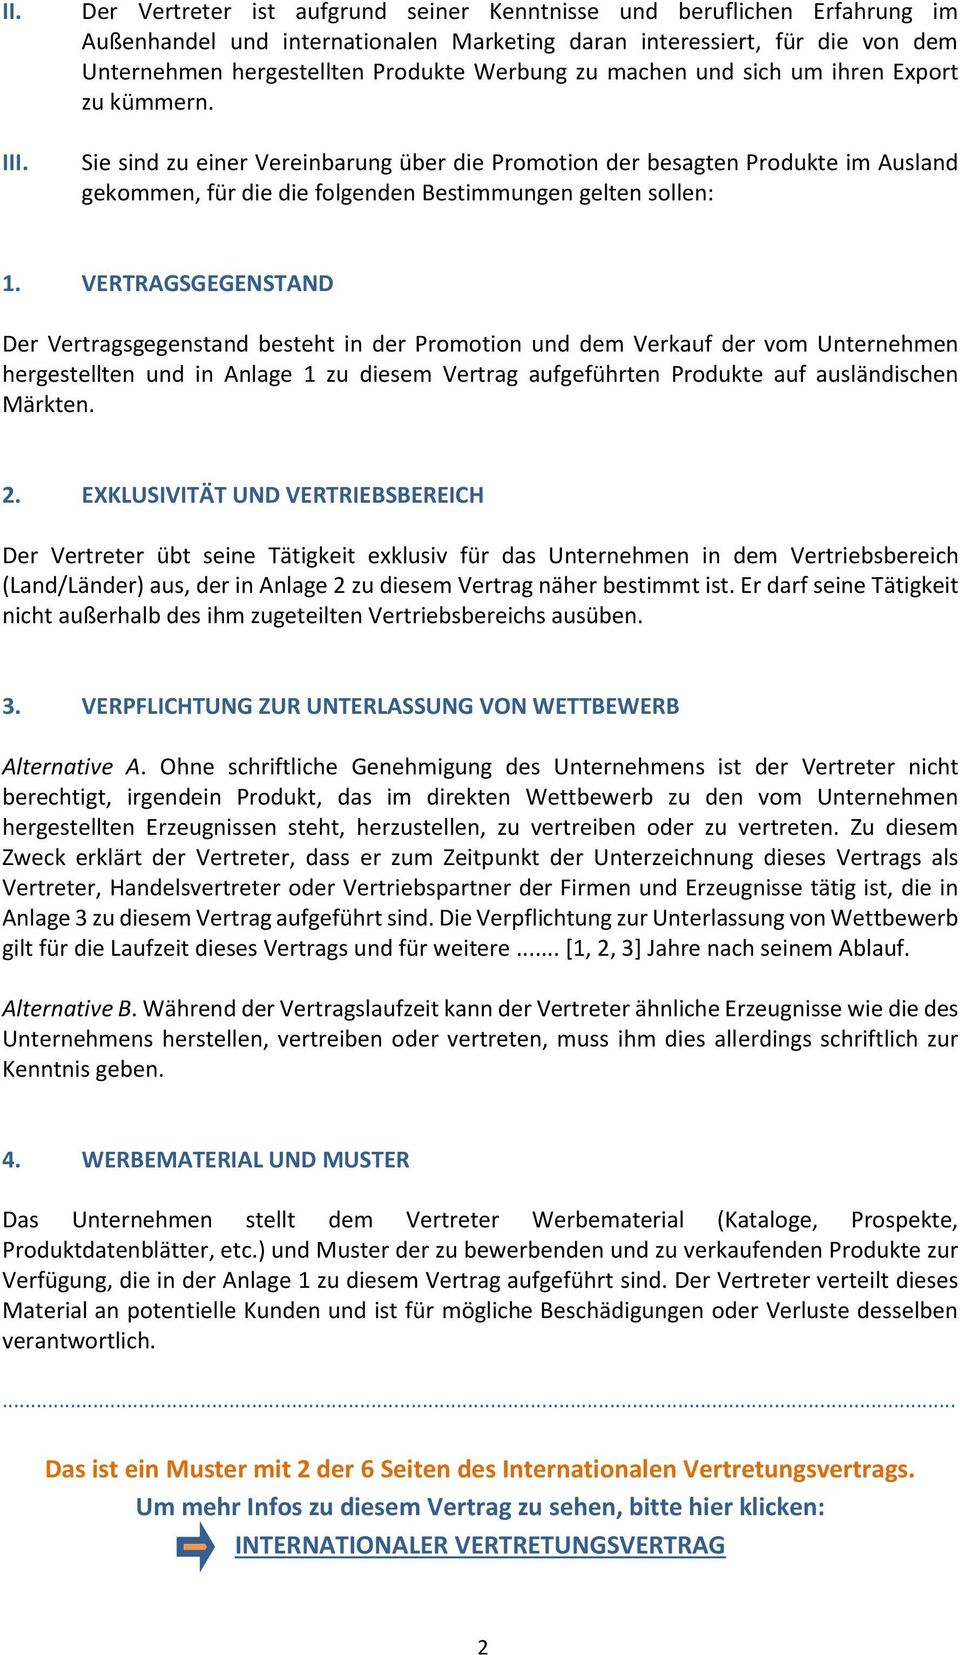 Internationaler Vertretungsvertrag Muster Pdf